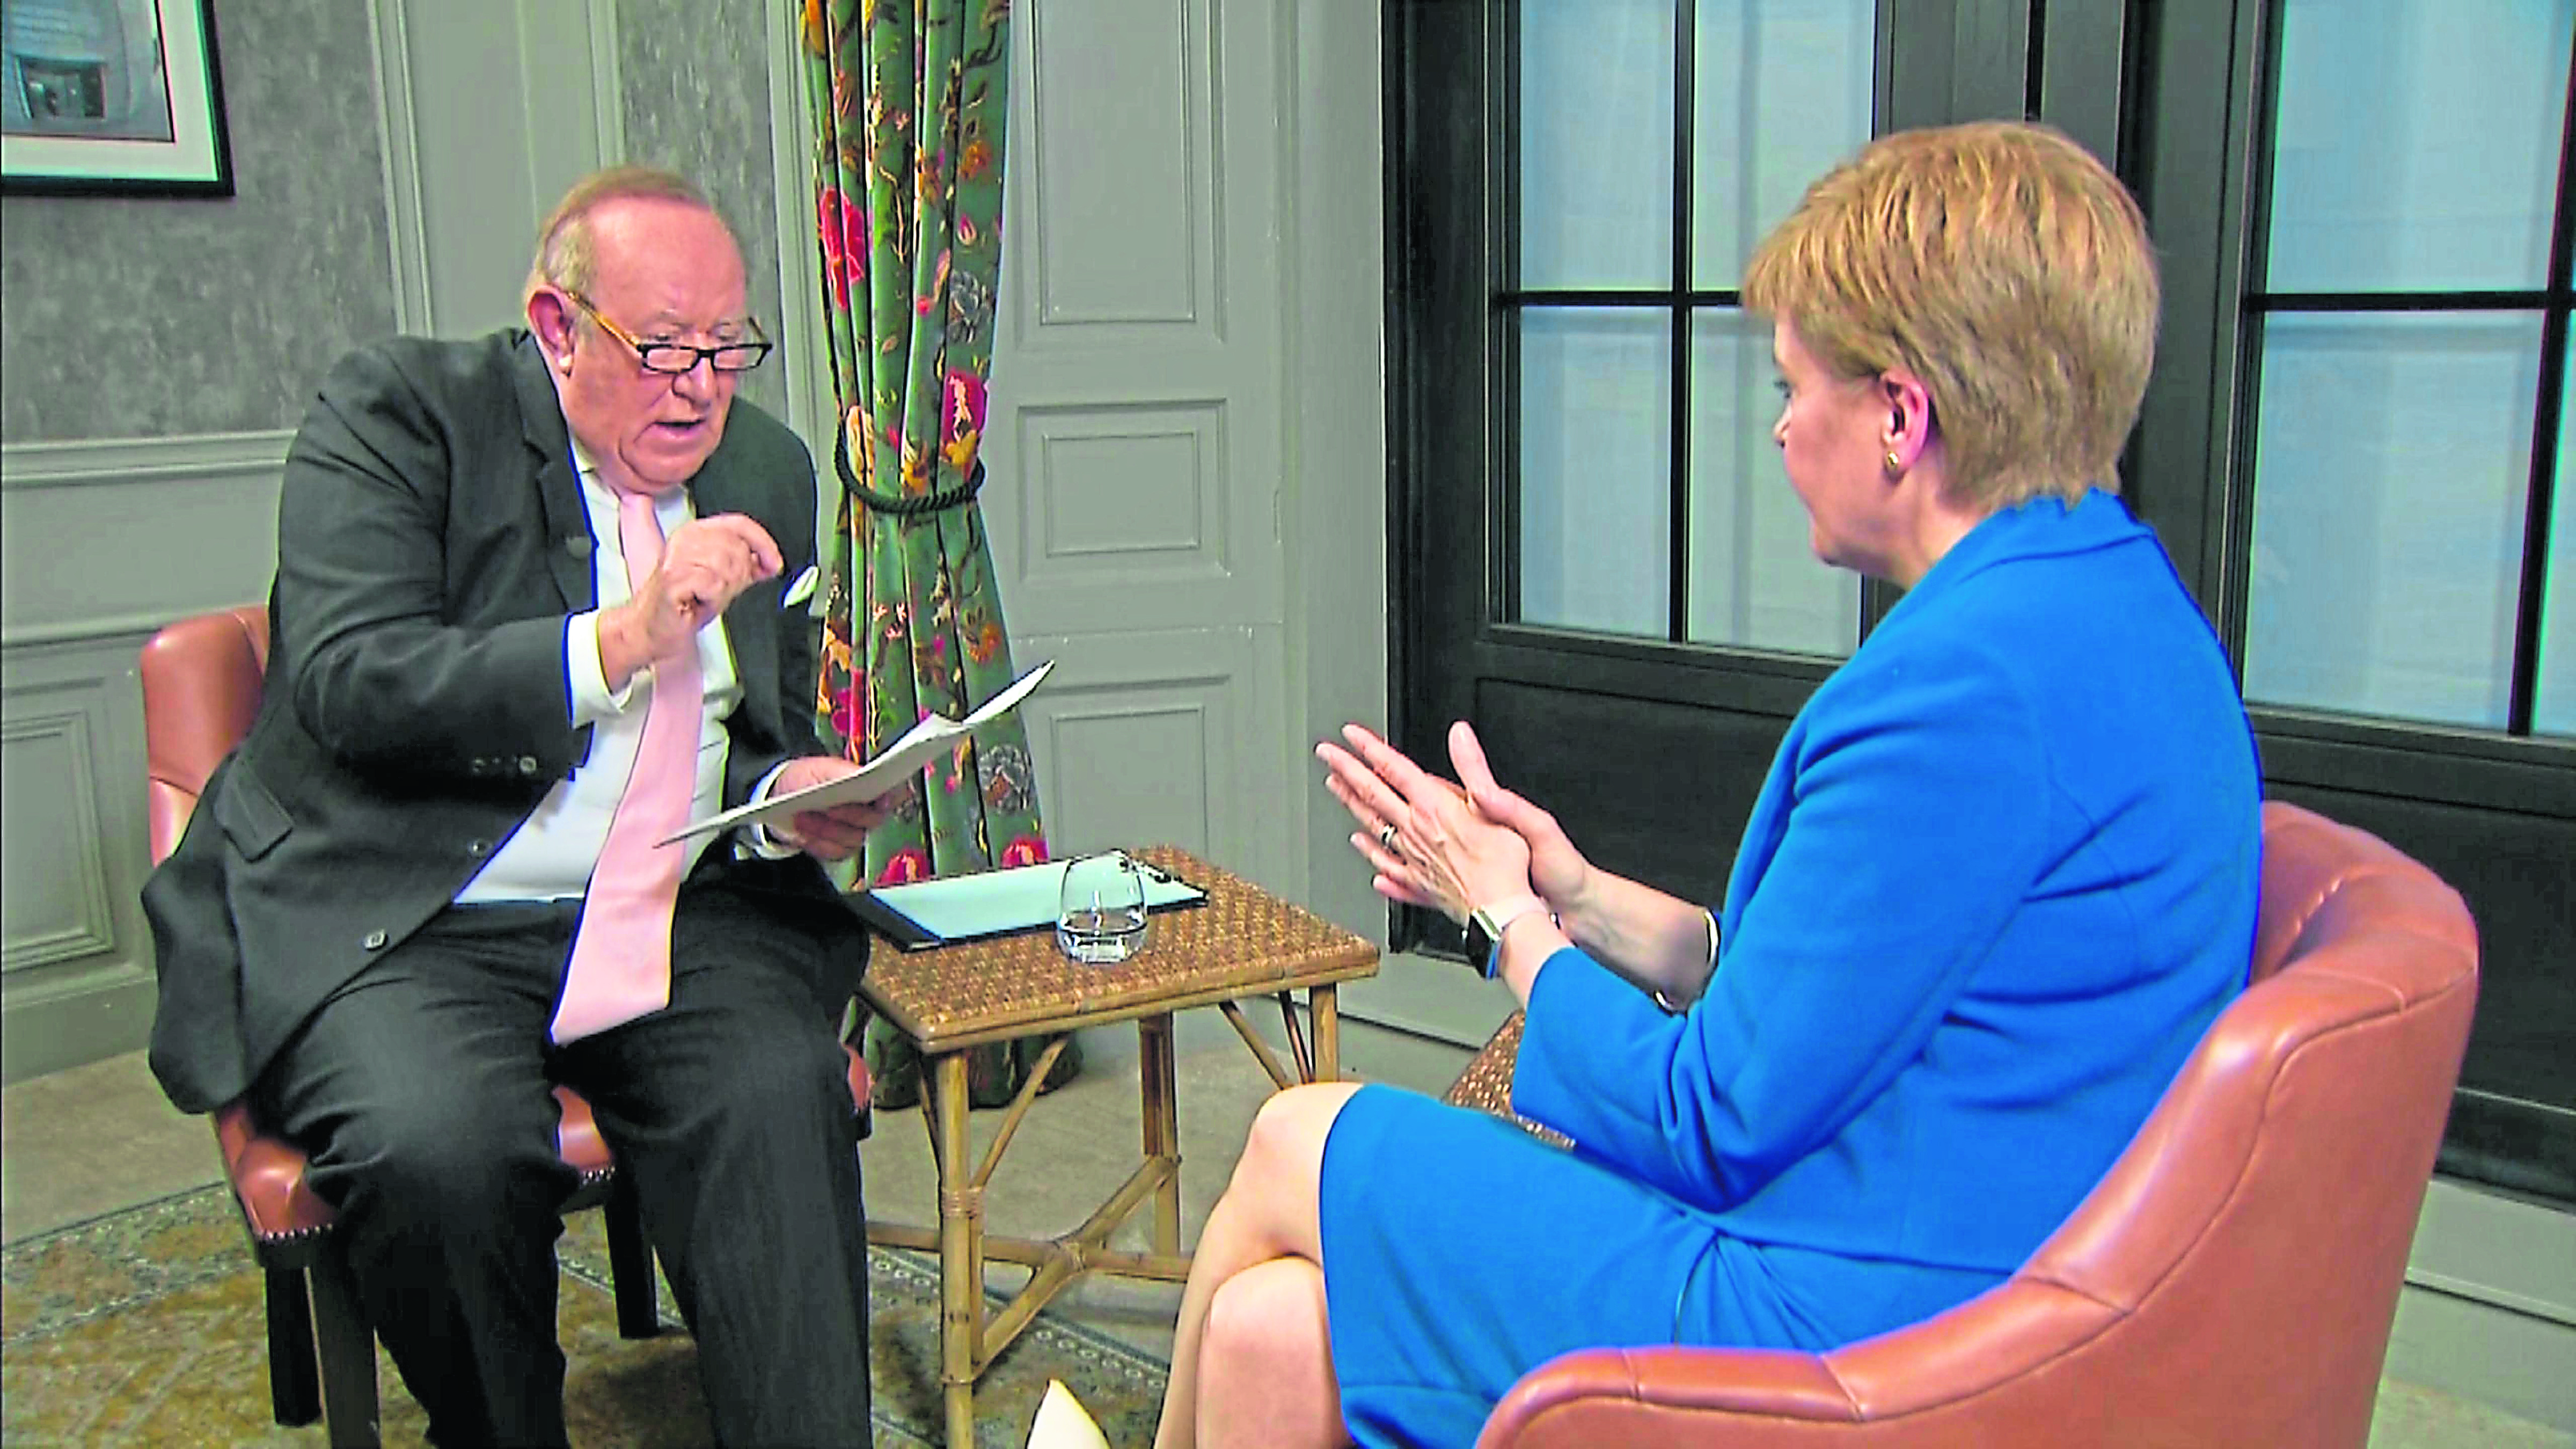 Nicola Sturgeon is interviewed by Andrew Neil.